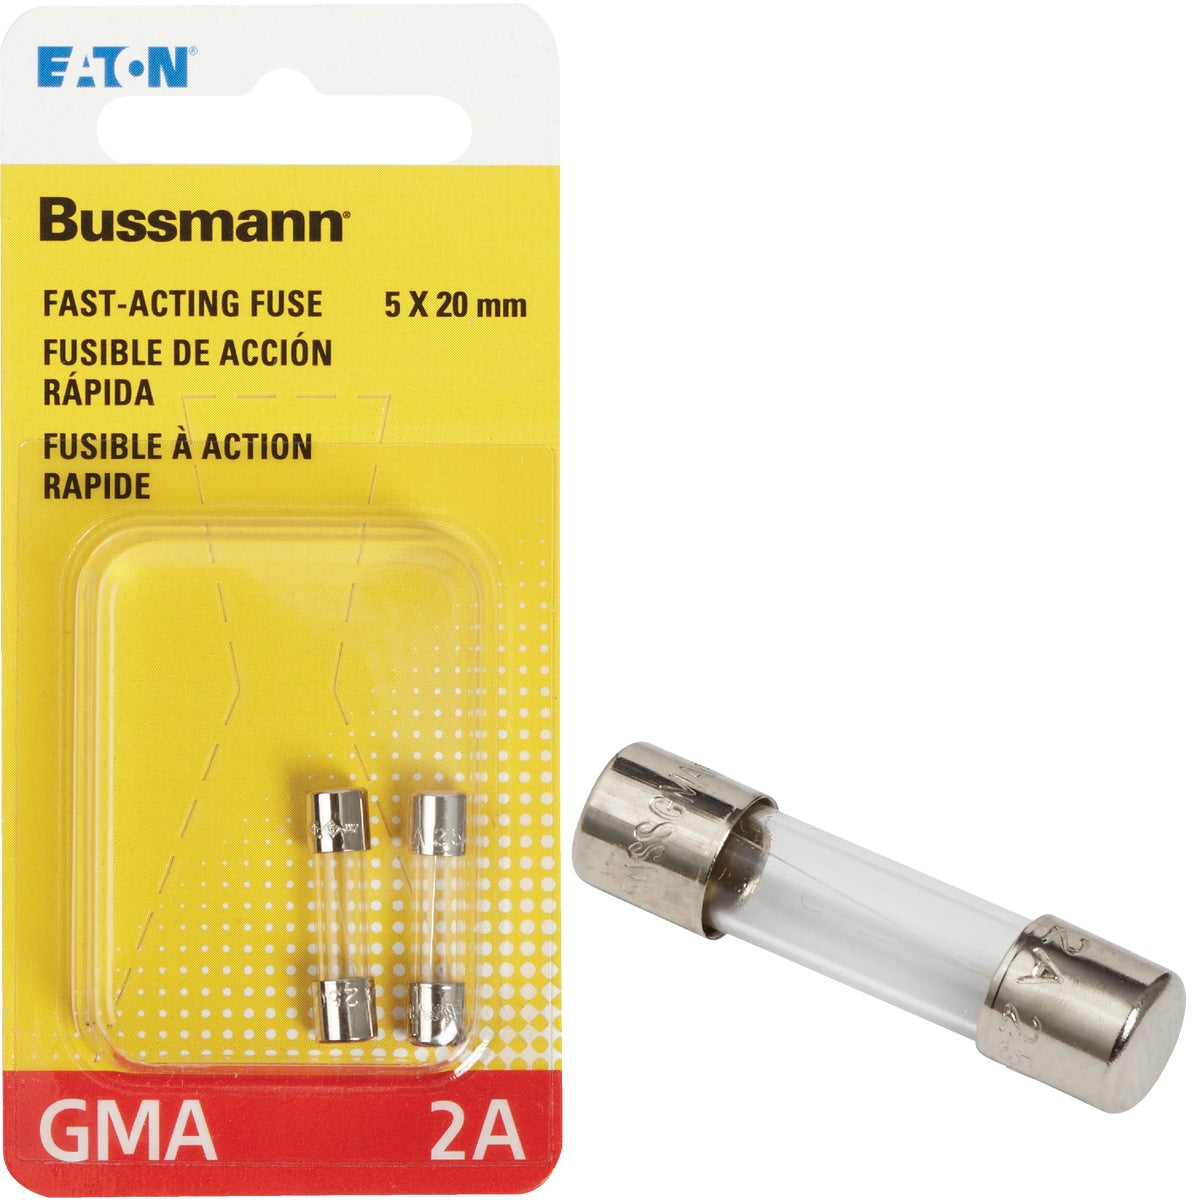 2A FAST ACTING FUSE - BP/GMA-2A by Bussmann Cooper